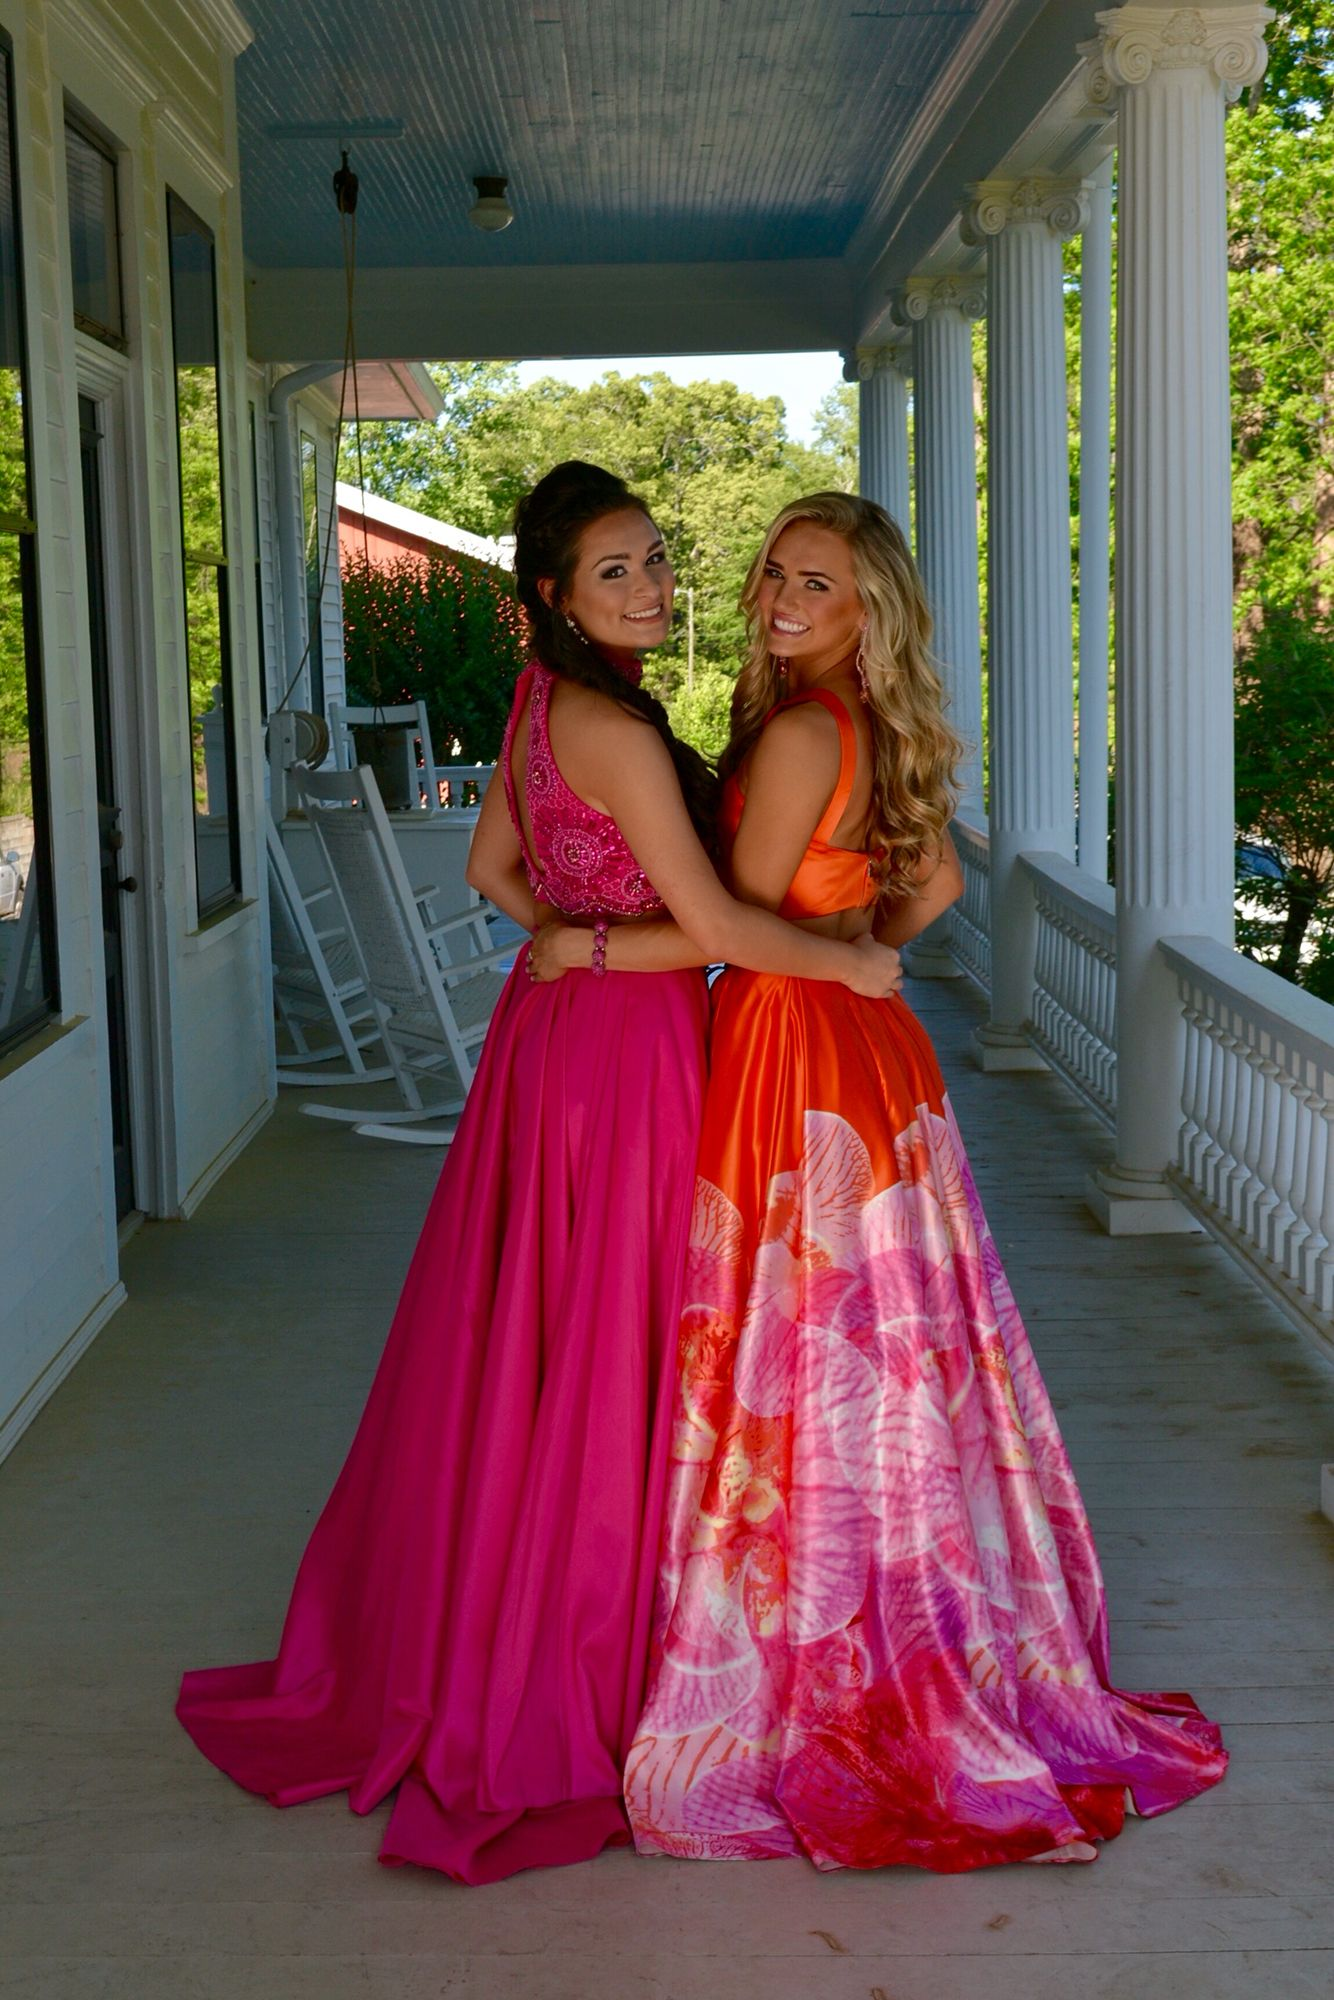 Best friend prom pictures prom photography pinterest prom